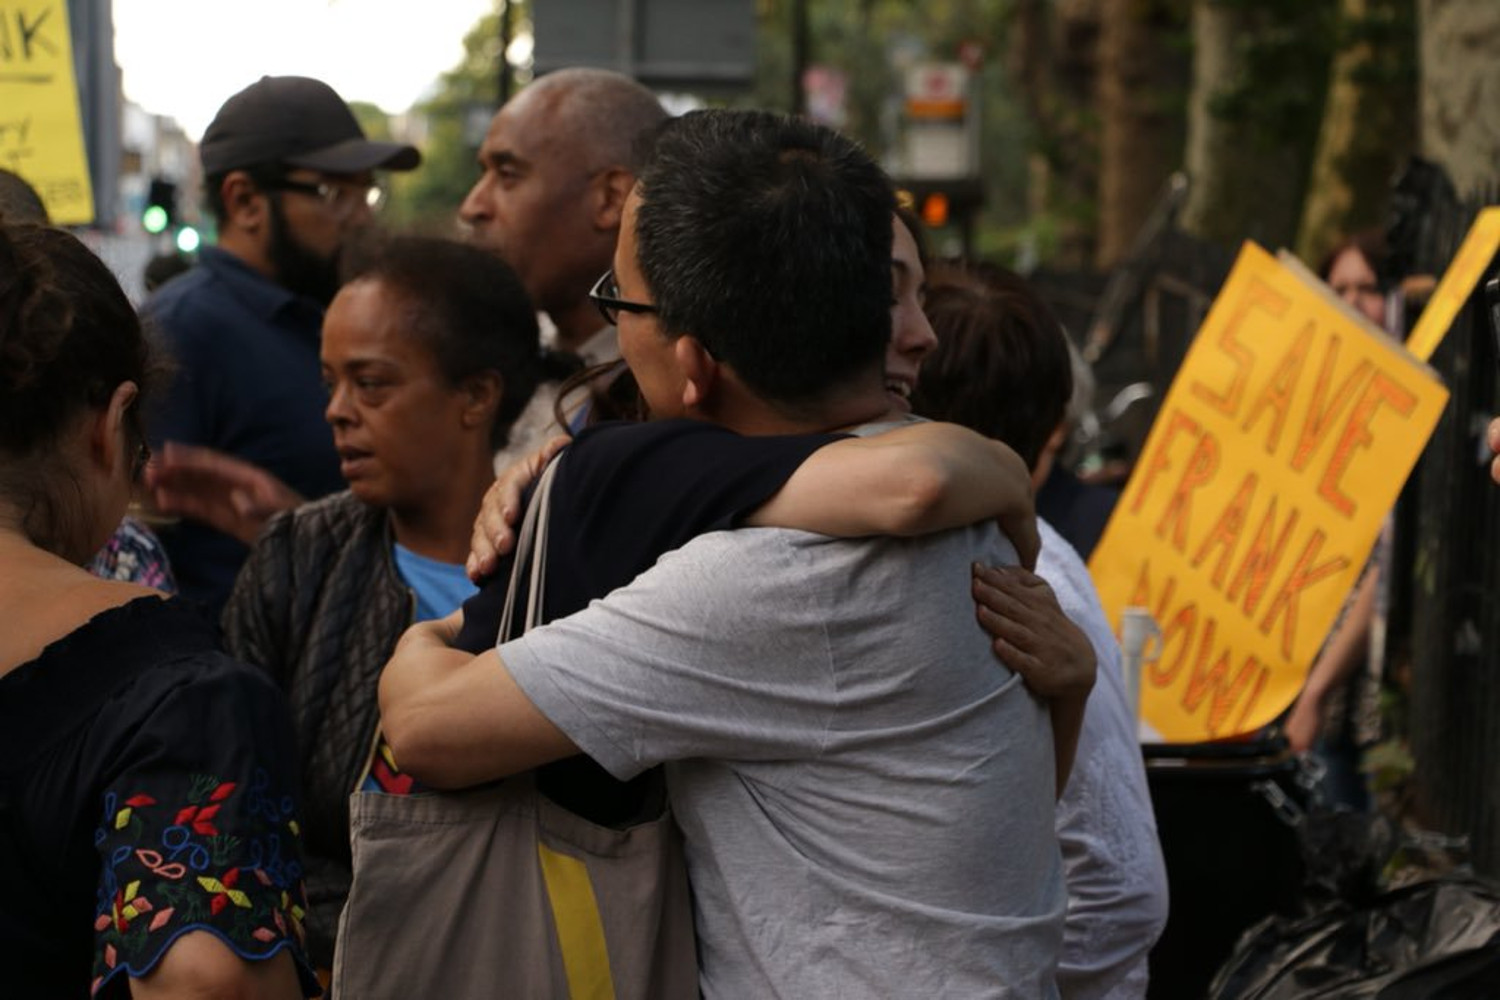 Frank Wang hugging a fellow protester at a demonstration in Bethnal Green